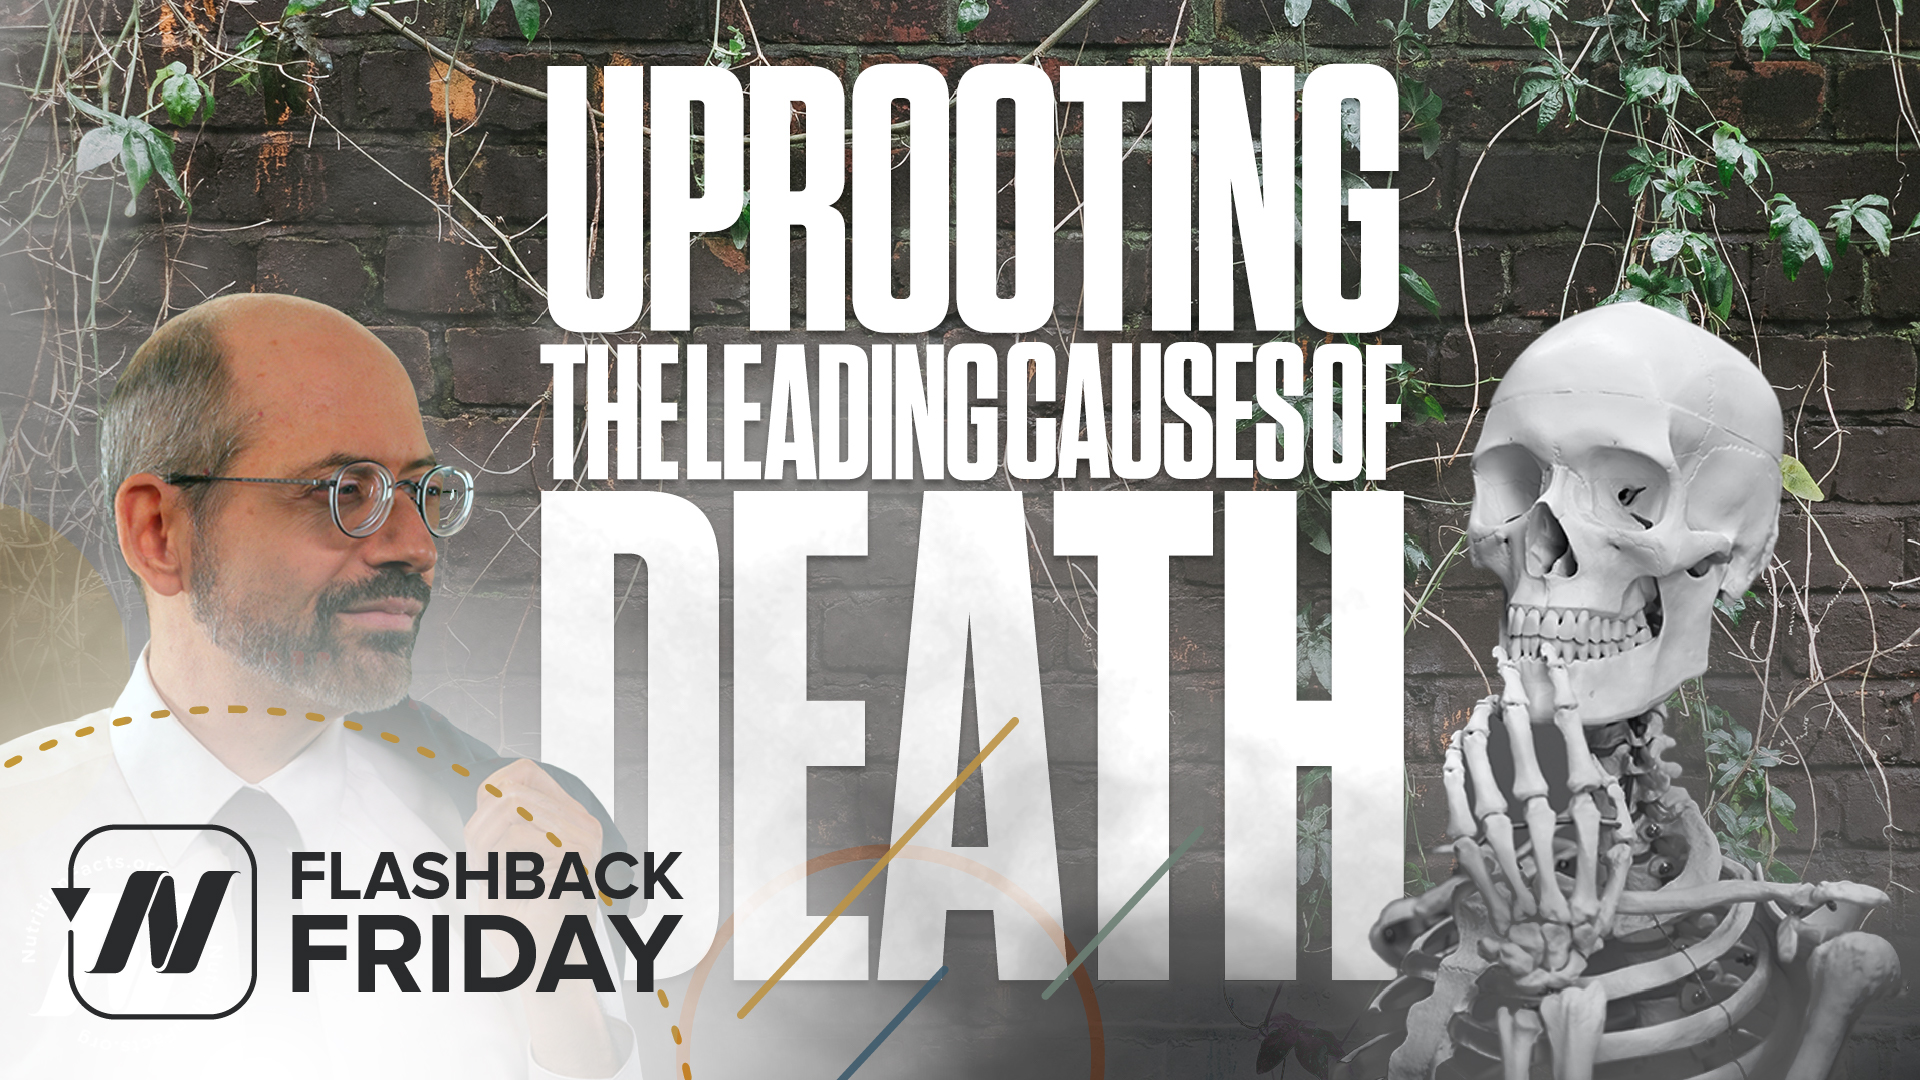 Flashback Friday: Uprooting the Leading Causes of Death